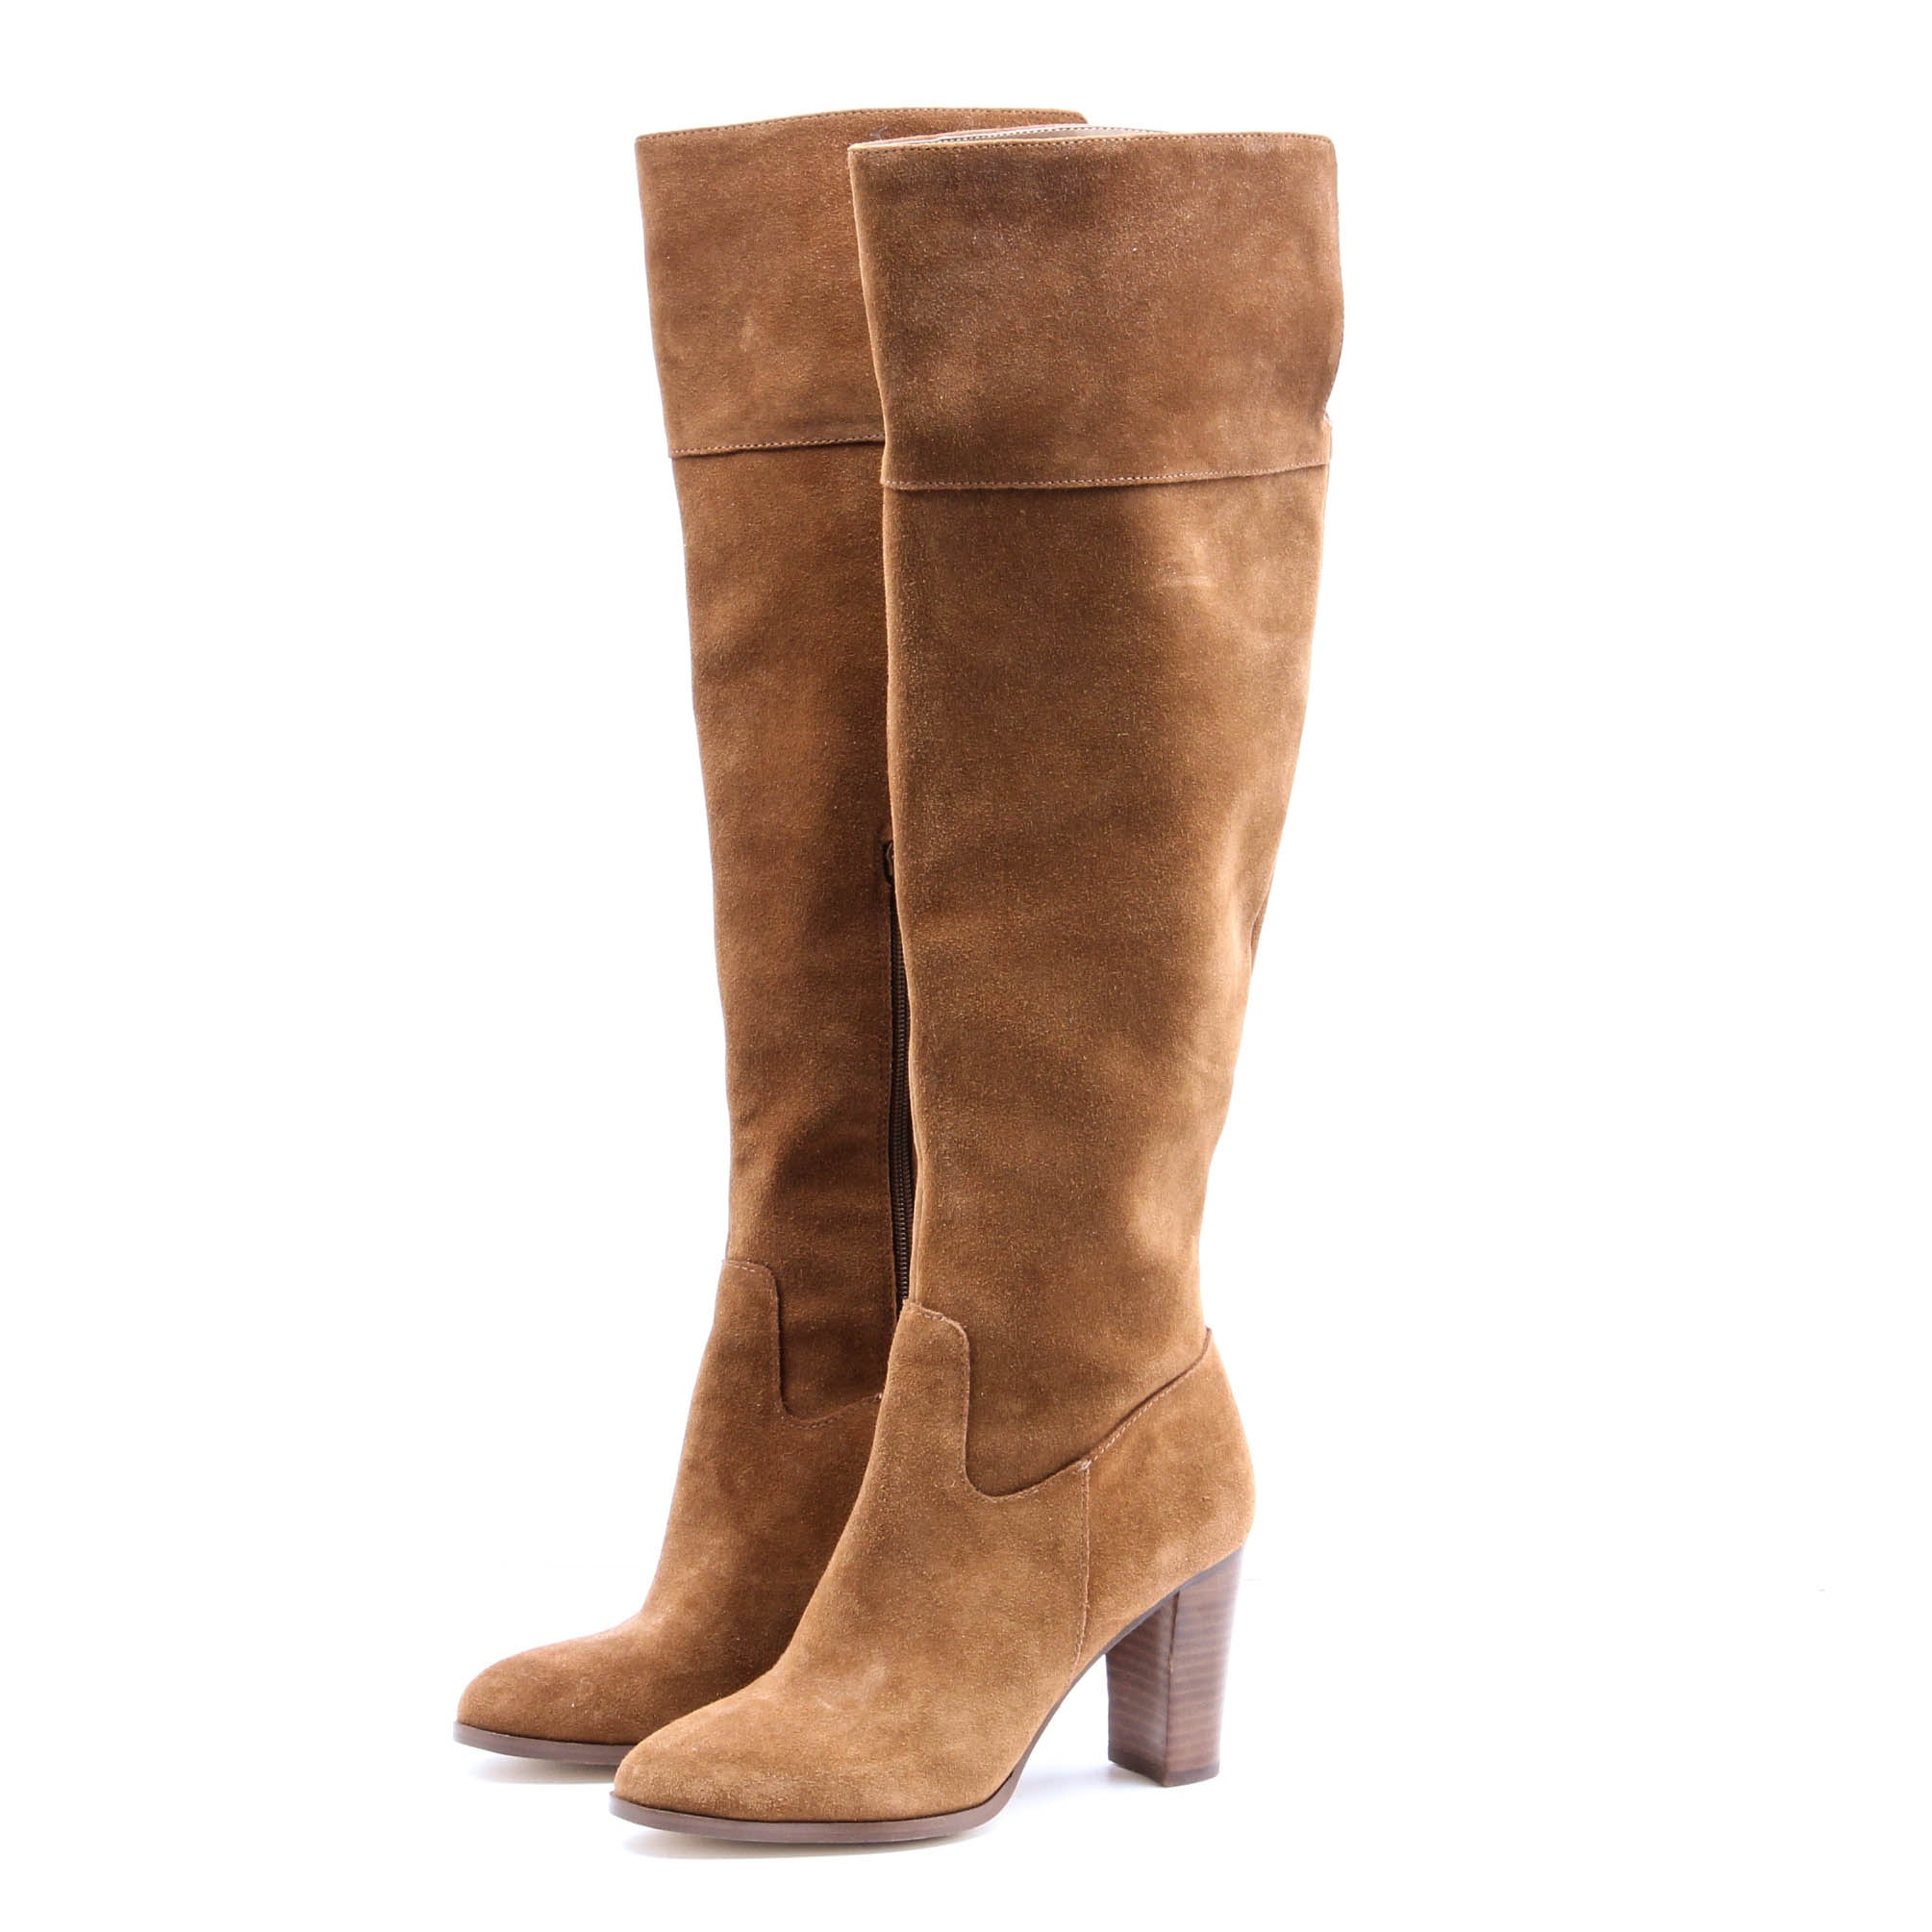 Lord & Taylor Suede Stacked Heel Knee High Boots